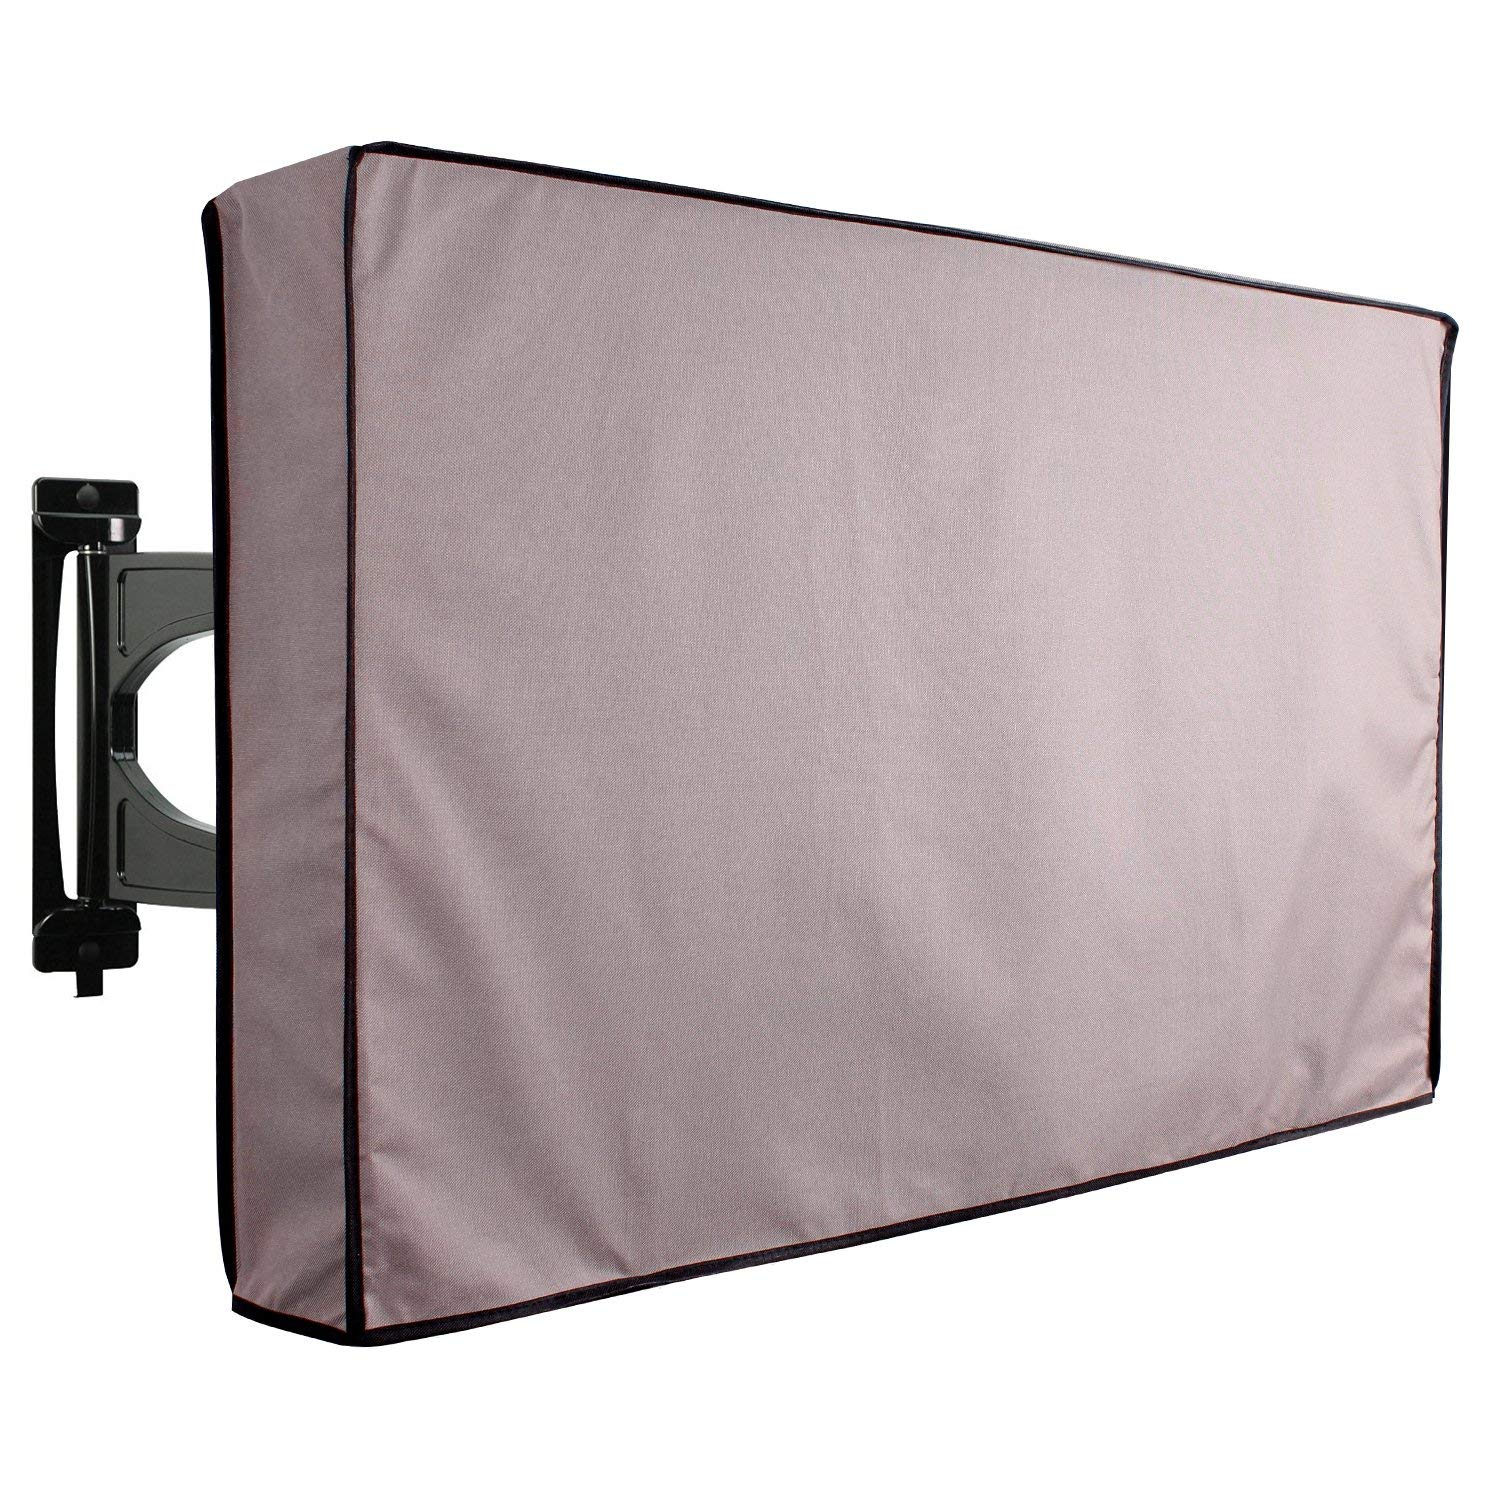 KHOMO GEAR Outdoor TV Cover - Titan Series - Universal Weatherproof Protector for 50 - 52 Inch TV - Fits Most Mounts & Brackets